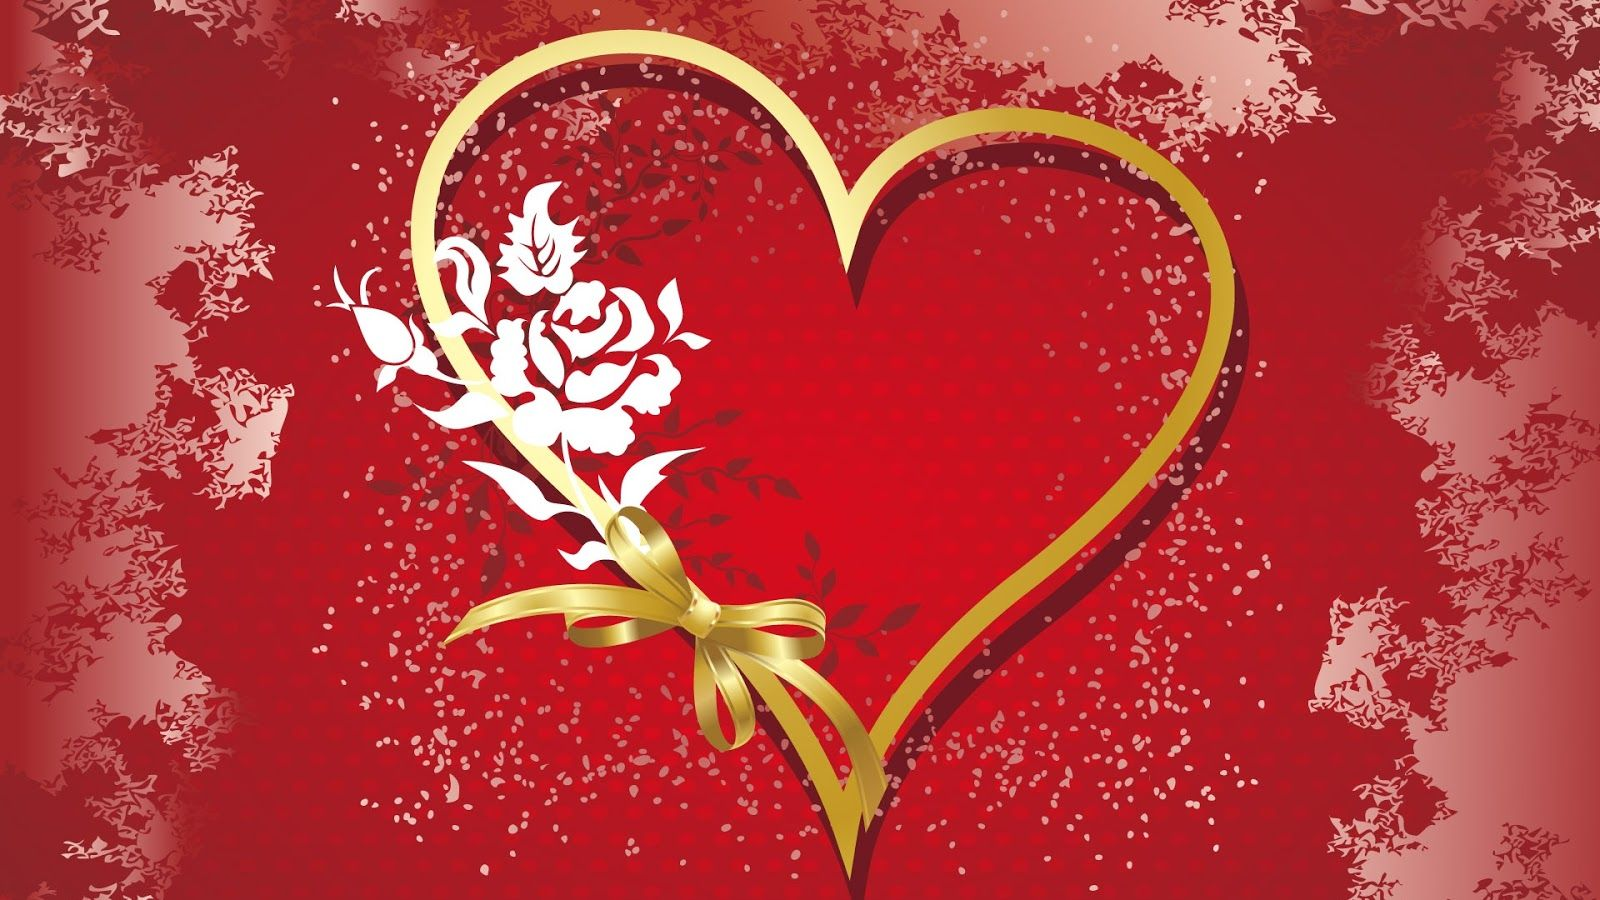 valentines day wallpaper download | valentines day | pinterest